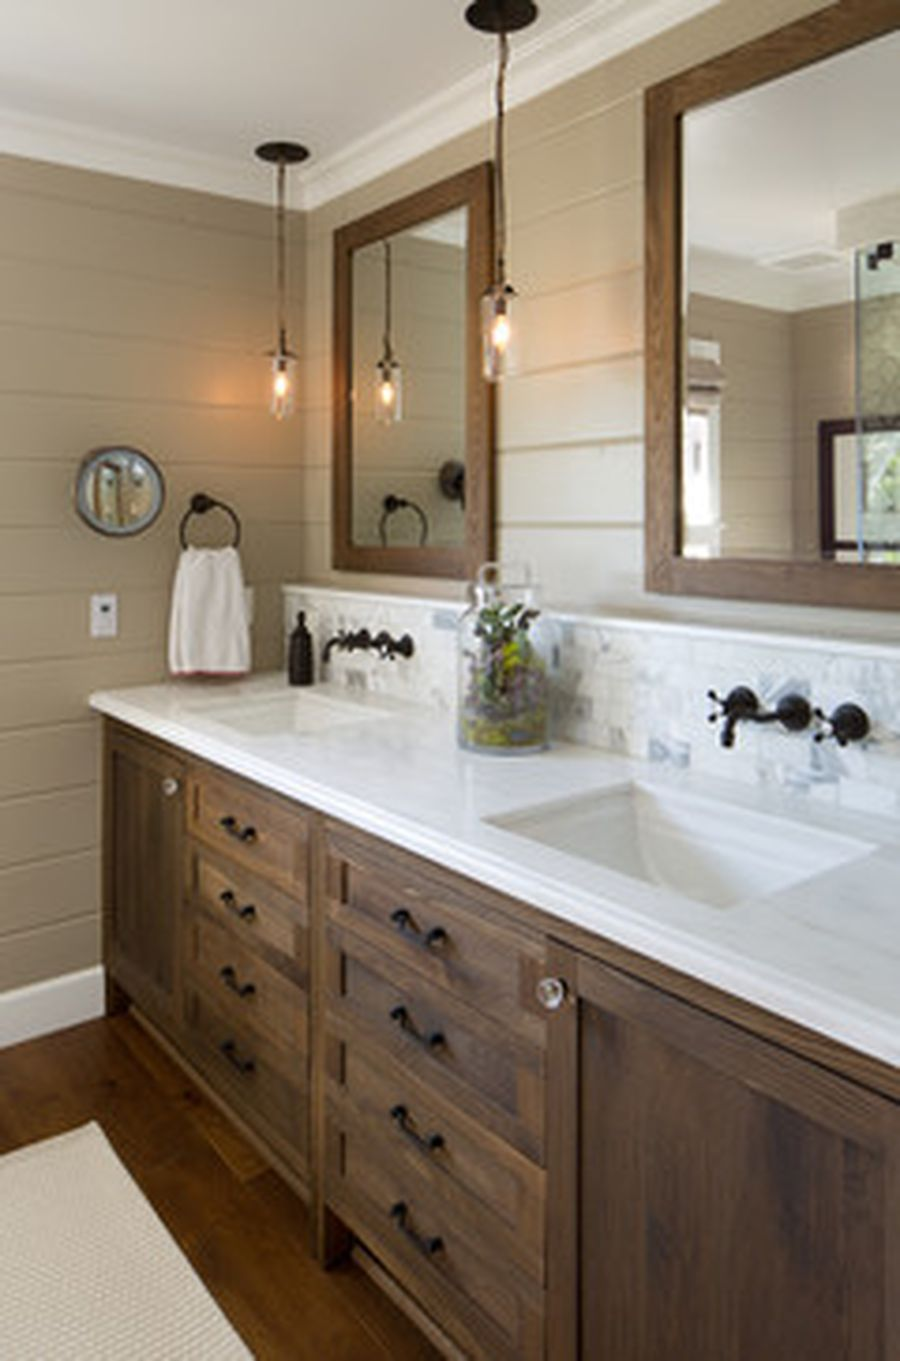 Rustic farmhouse style bathroom design ideas 27 - Hoommy.com on Rustic Farmhouse Bathroom  id=54712